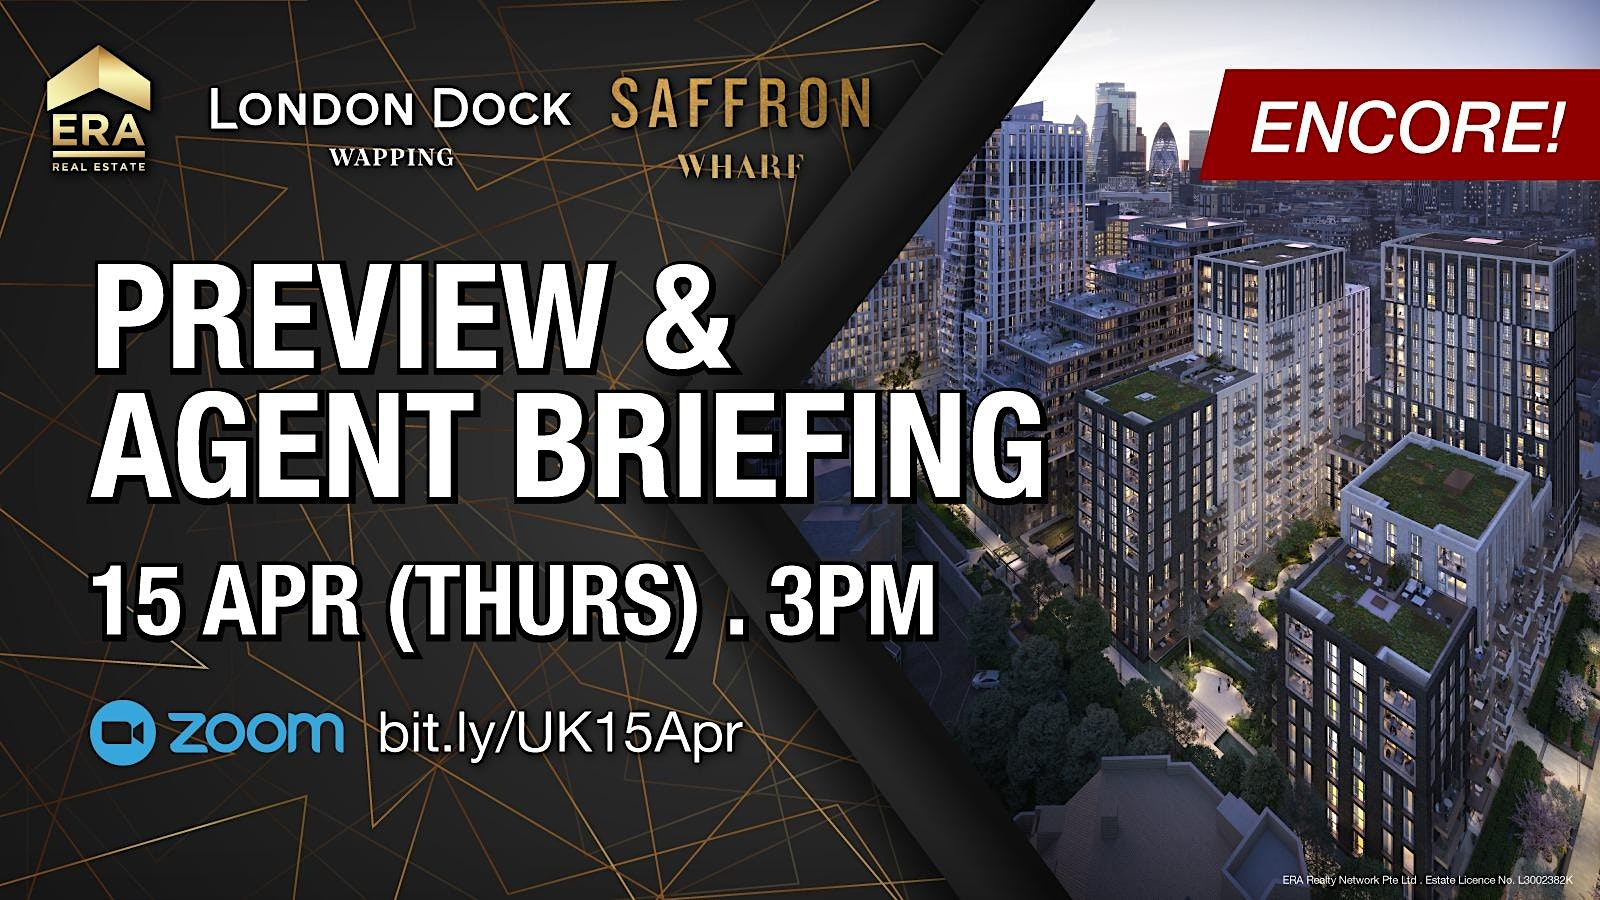 London Dock Wapping & Saffron Wharf: Preview & Agent Briefing (ENCORE)